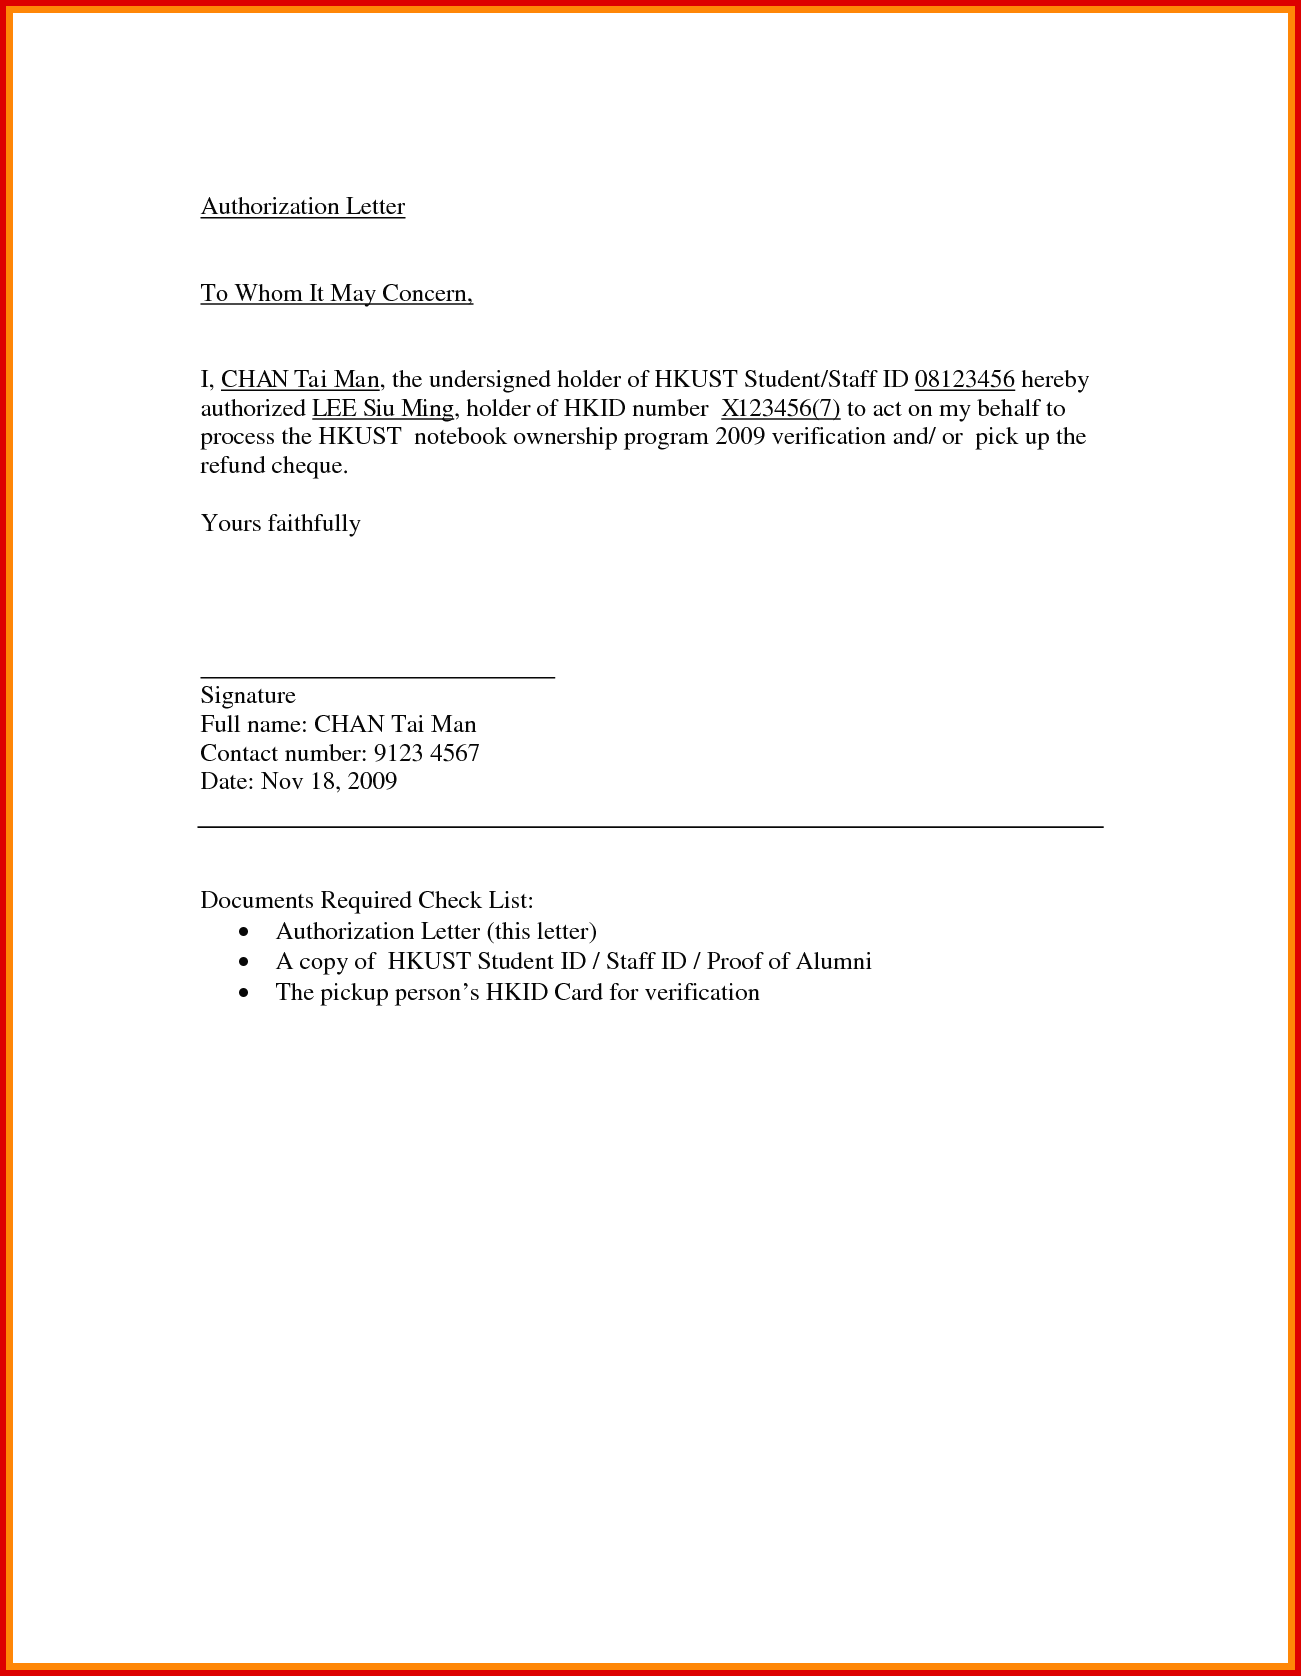 Sample Authorization Letter for Collecting Documents